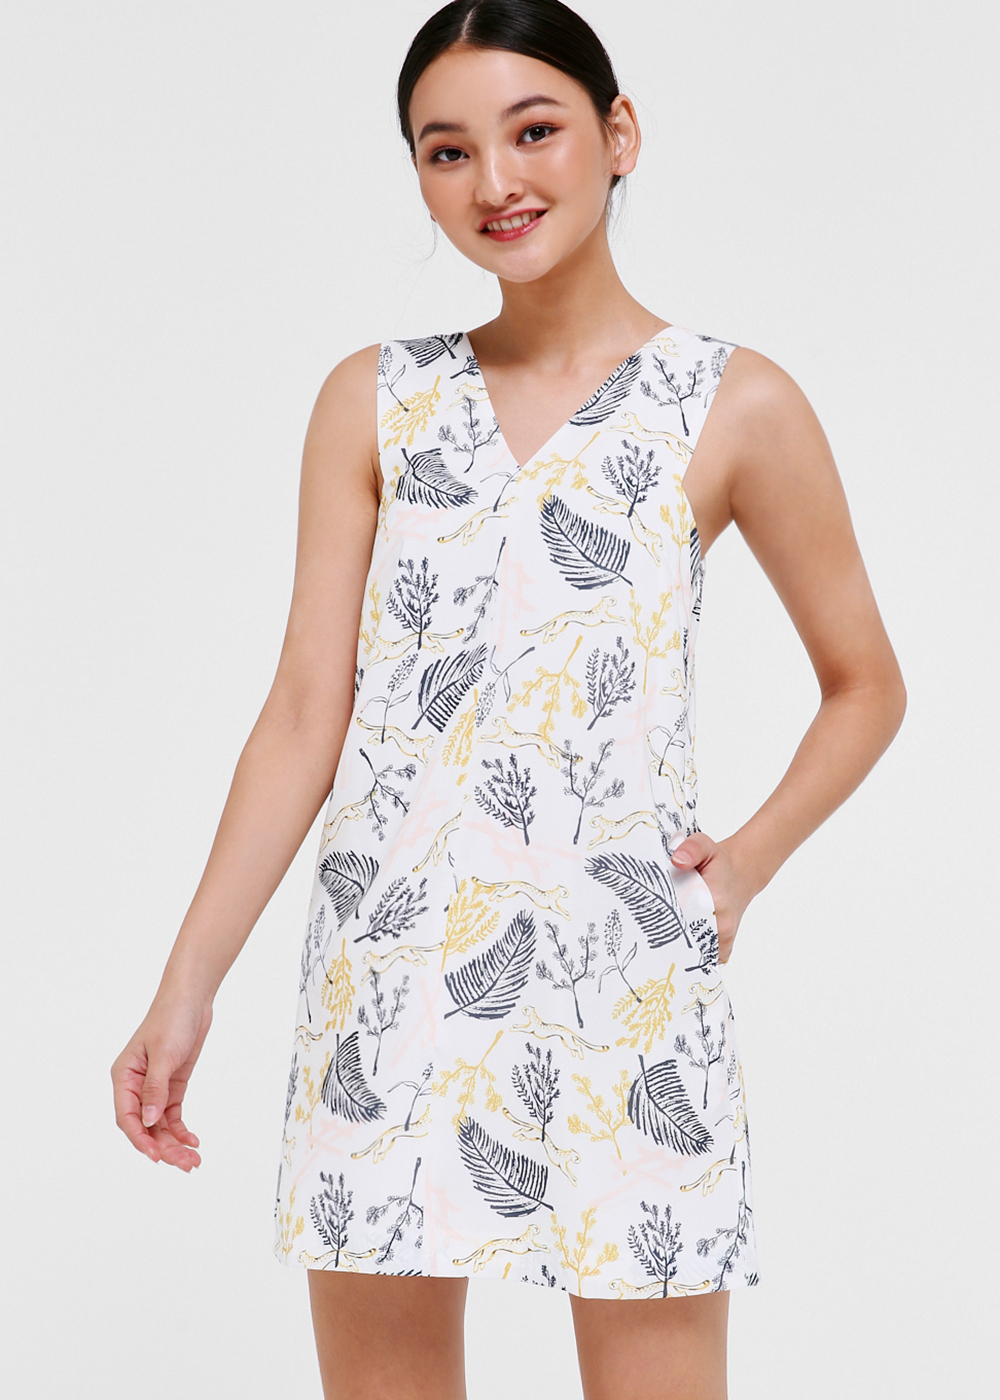 Hana V-neck Shift Dress in Jungle Mania